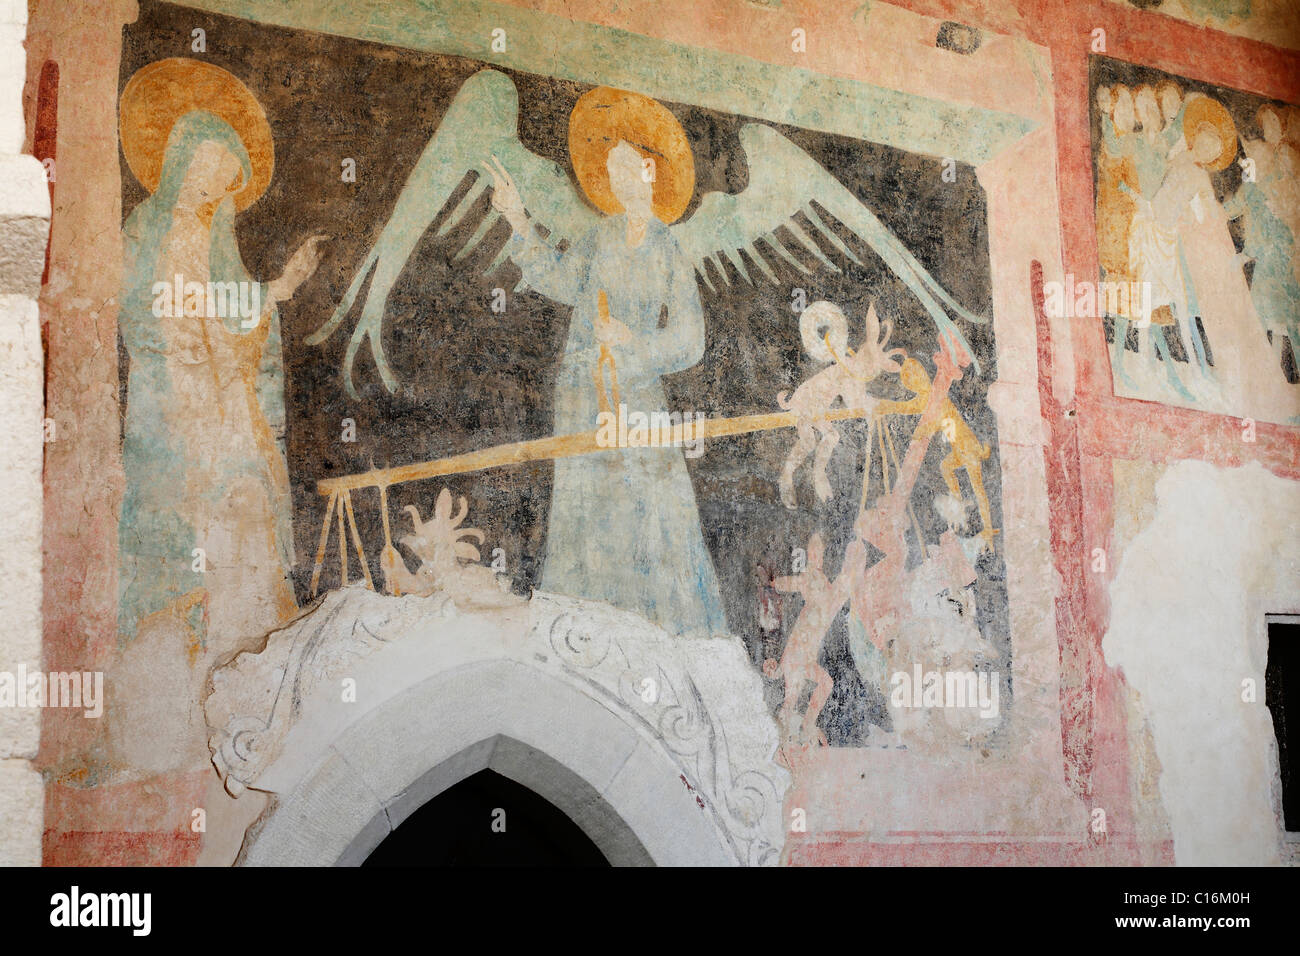 Gothic frescoes from the 15th century in St Michael's church, Heustreu, Rhoen-Grabfeld, Lower Franconia, Bavaria - Stock Image